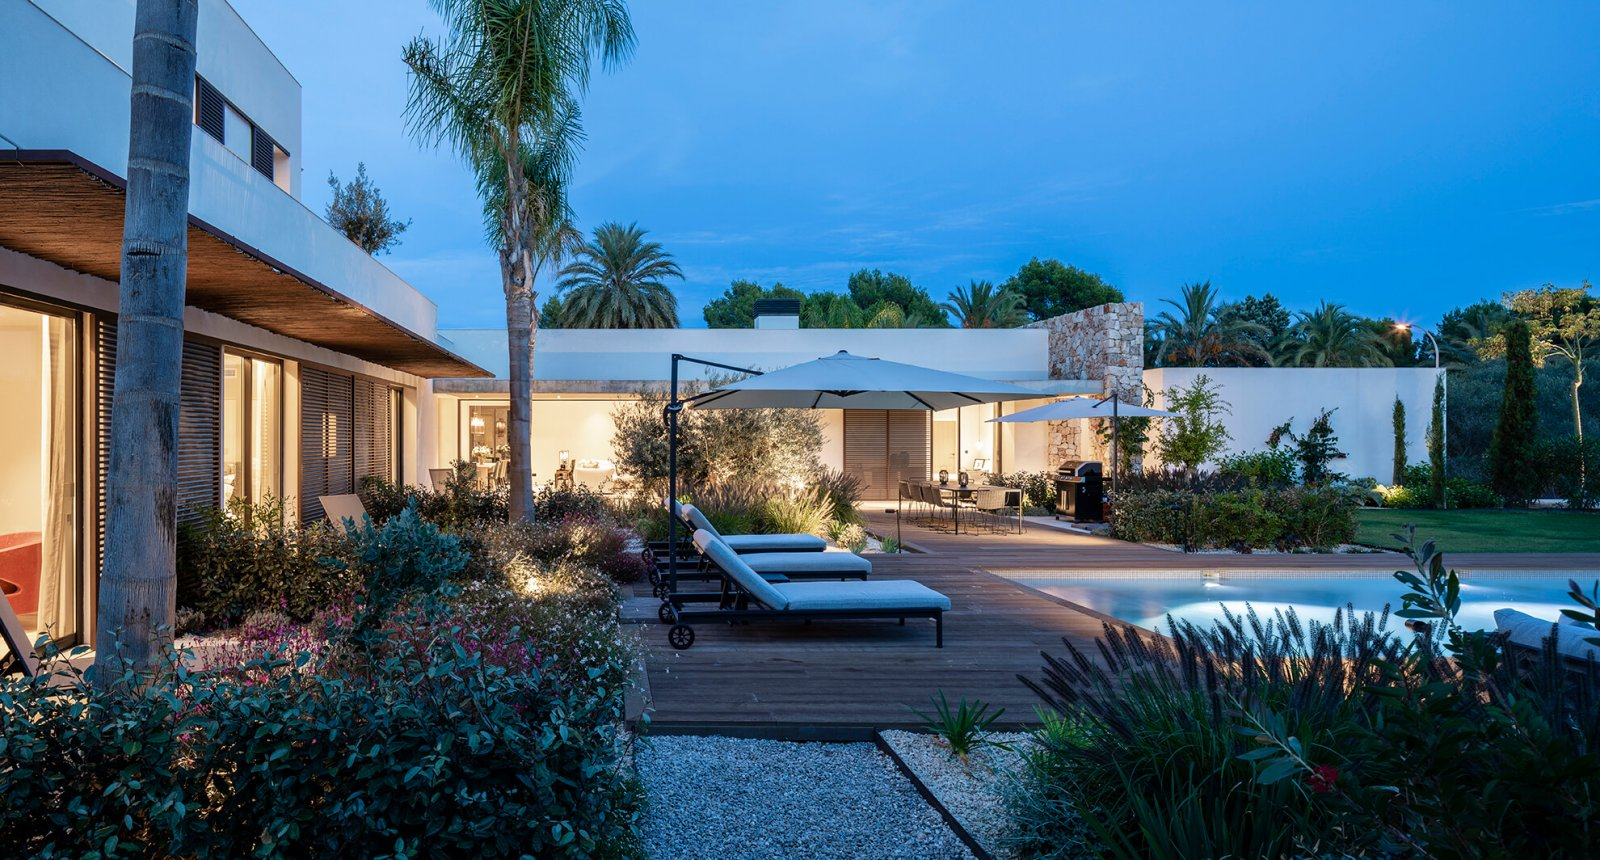 Side view of the garden with chill-out area and pool at night of the Sol de Mallorca house